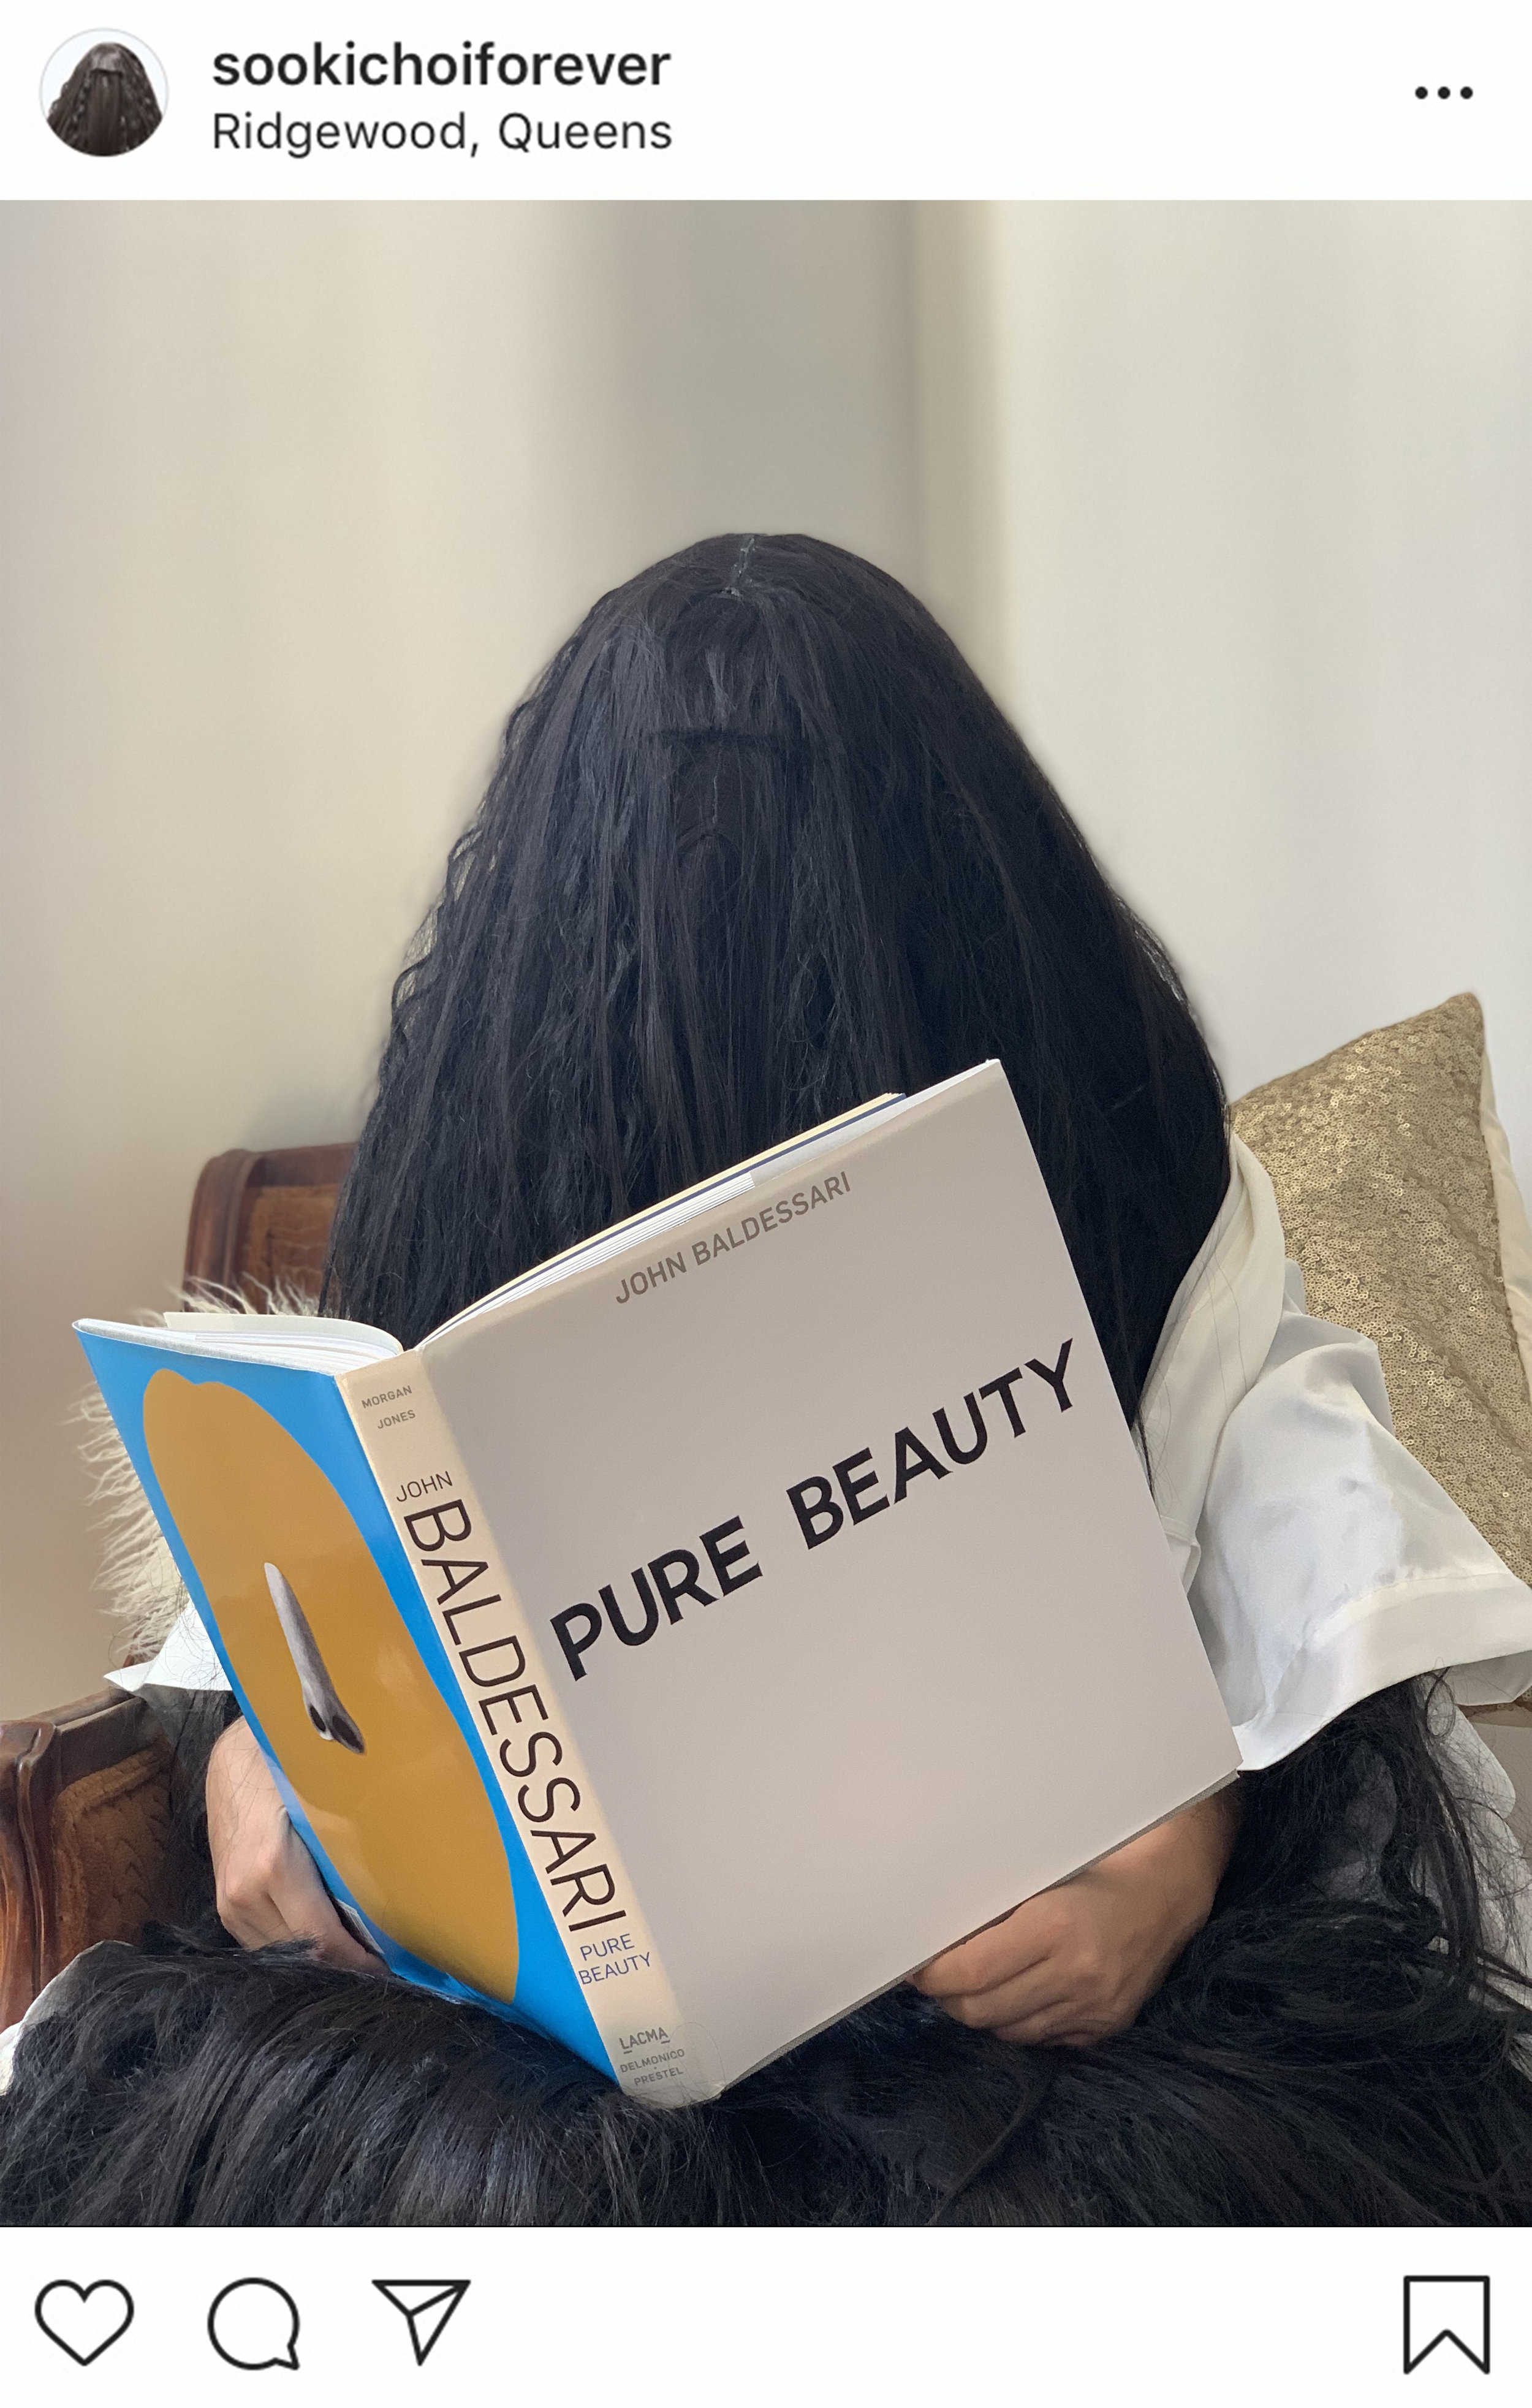 On her free time, when she is not getting her nails done or meeting up with friends for brunch, Sooki likes to catch up on her reading. Here she is sitting in her bedroom on a Saturday afternoon reading a book titled Pure Beauty.